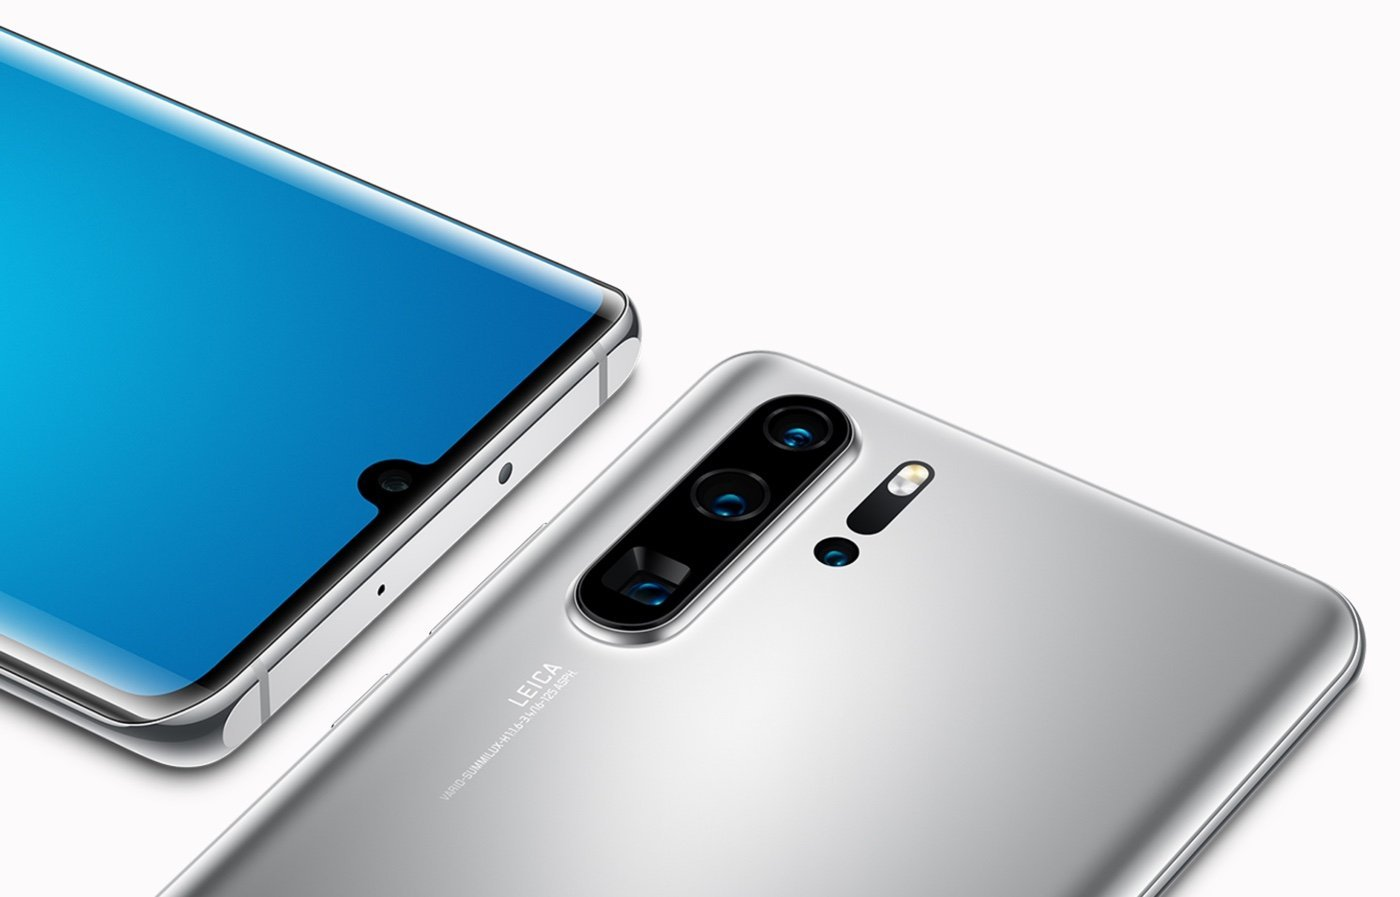 Le Huawei P30 Pro New Edition disponible en France : un petit refresh certifié Google